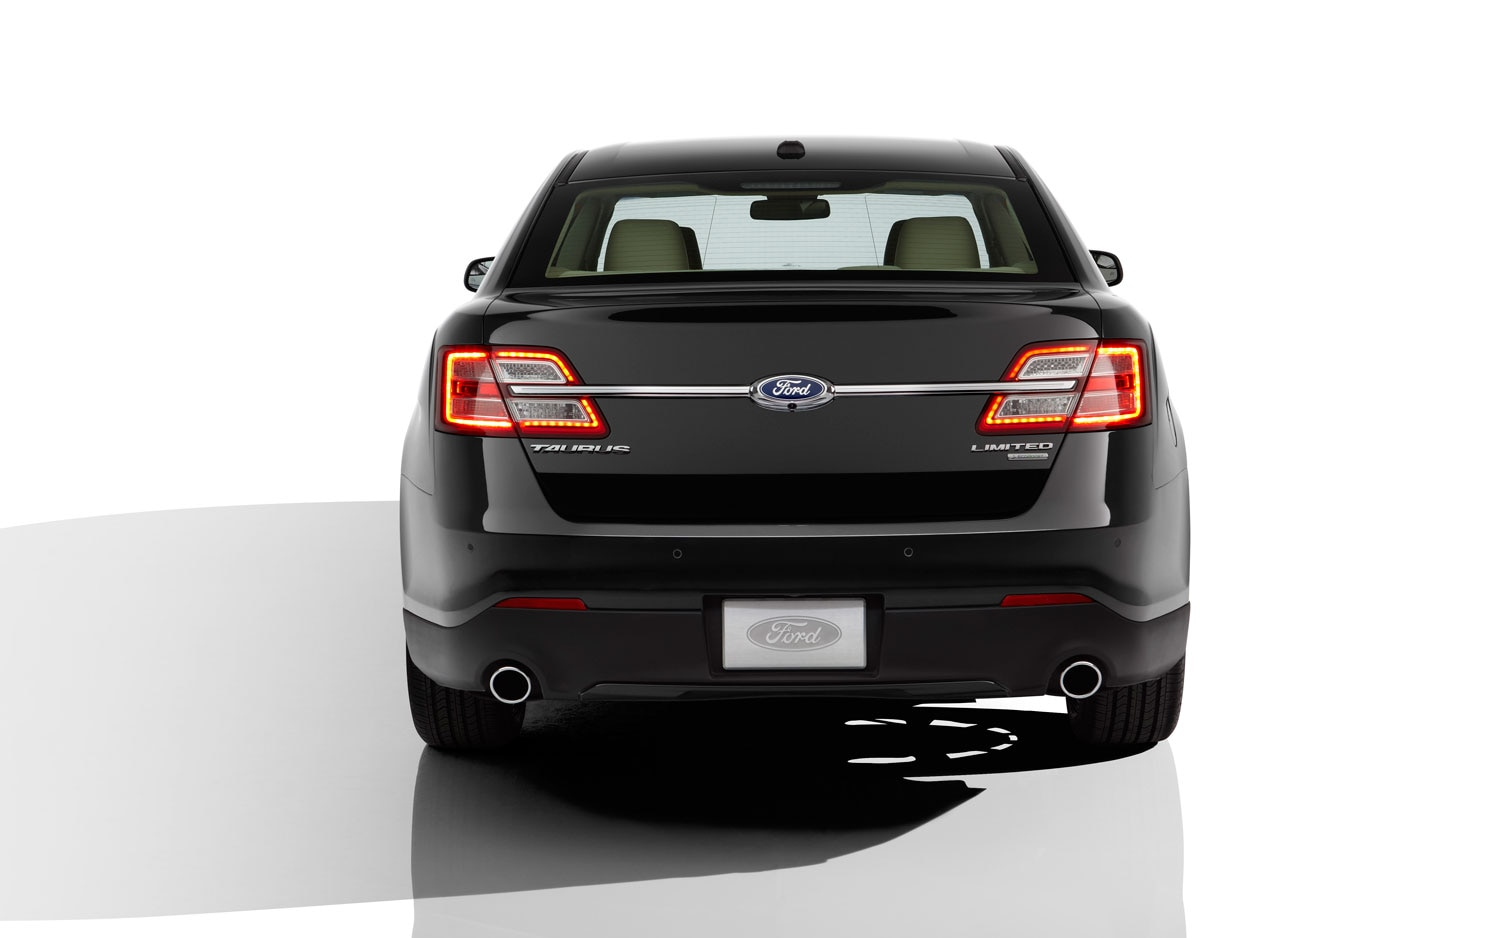 2013 ford taurus rear view 2013 ford taurus first look automobile magazine 2013 ford taurus police interceptor wiring diagram at webbmarketing.co